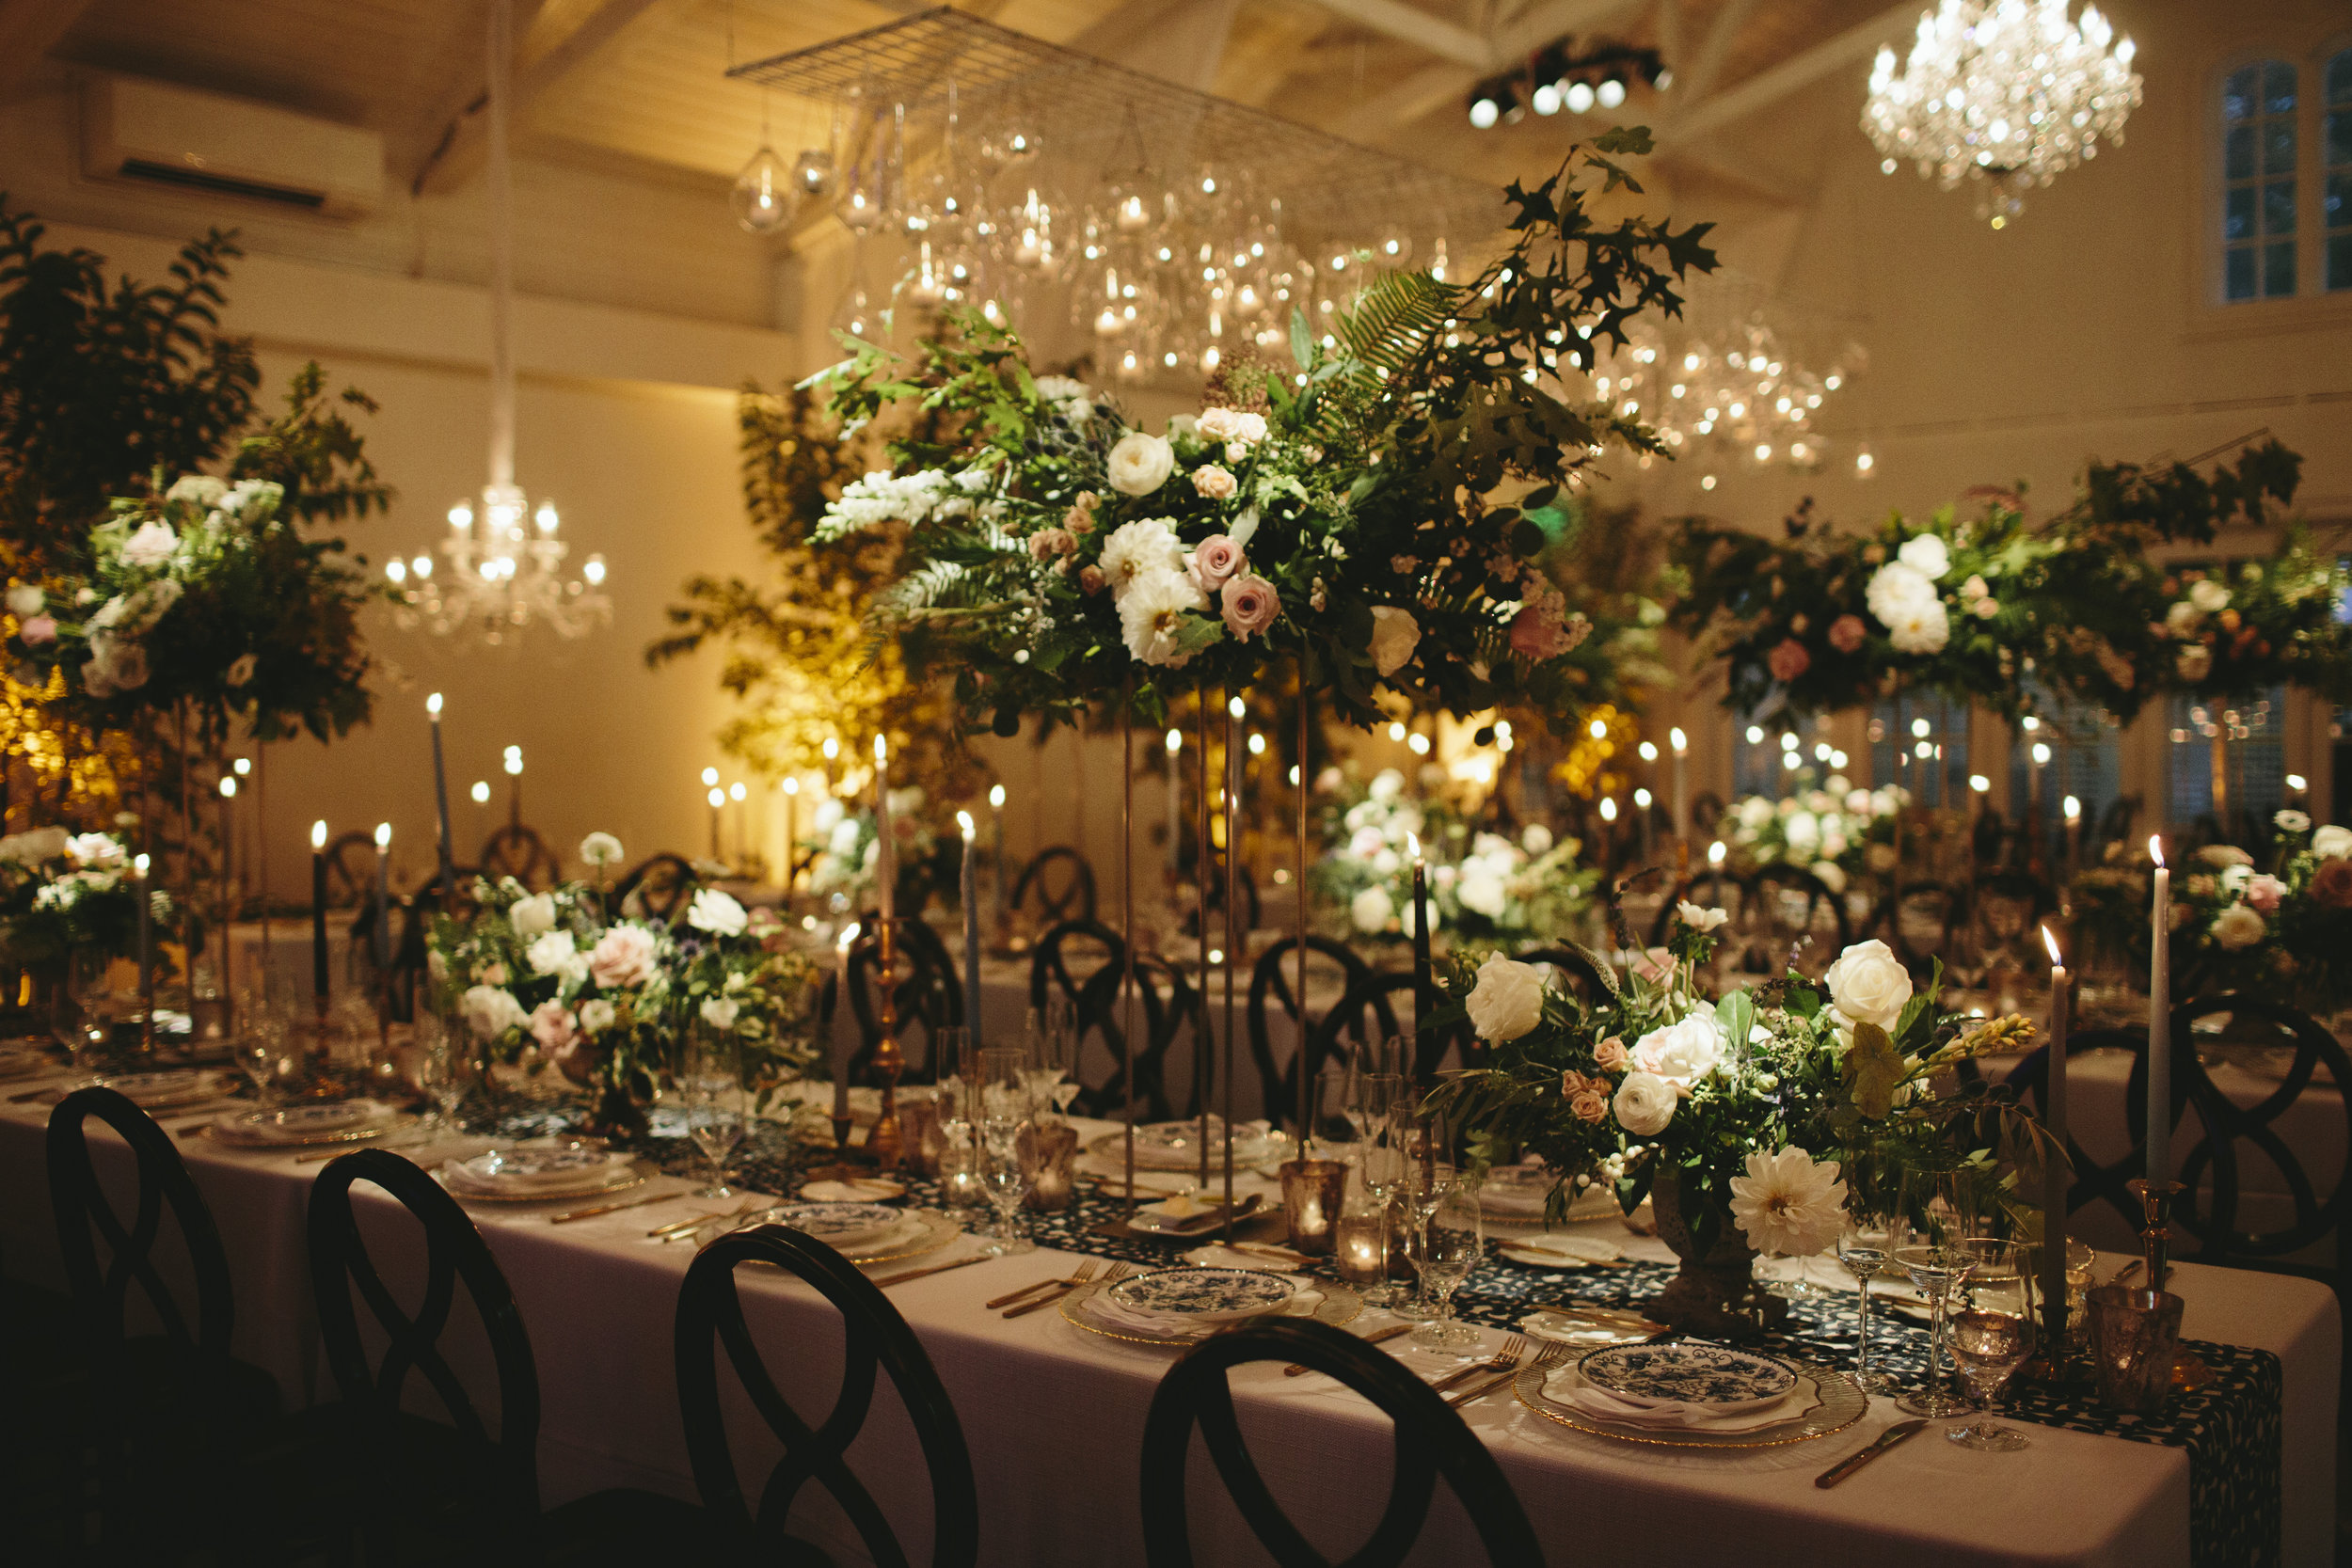 b8efe-lauren26dylan27srestaurantinspiredweddingreceptionlauren26dylan27srestaurantinspiredweddingreception.jpg